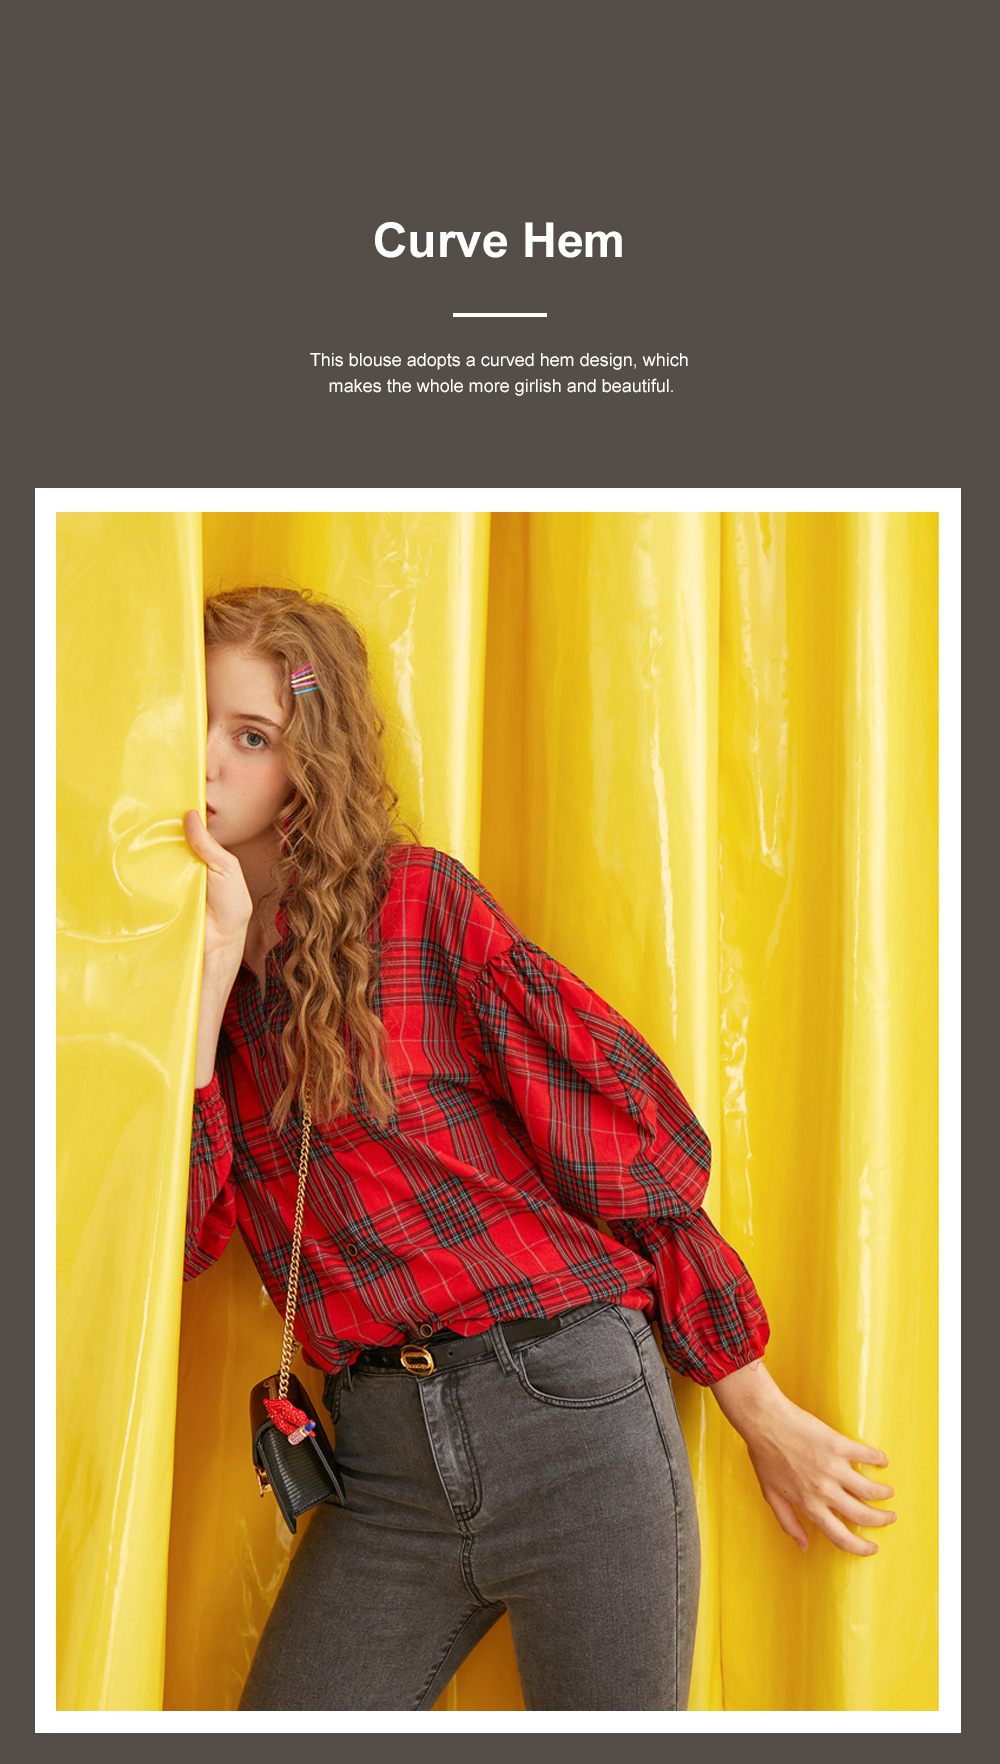 ELF SACK Plaid Shirt for Women Retro Style Women's Shirt New Korean Student Bubble Sleeve Top 2019 New 2